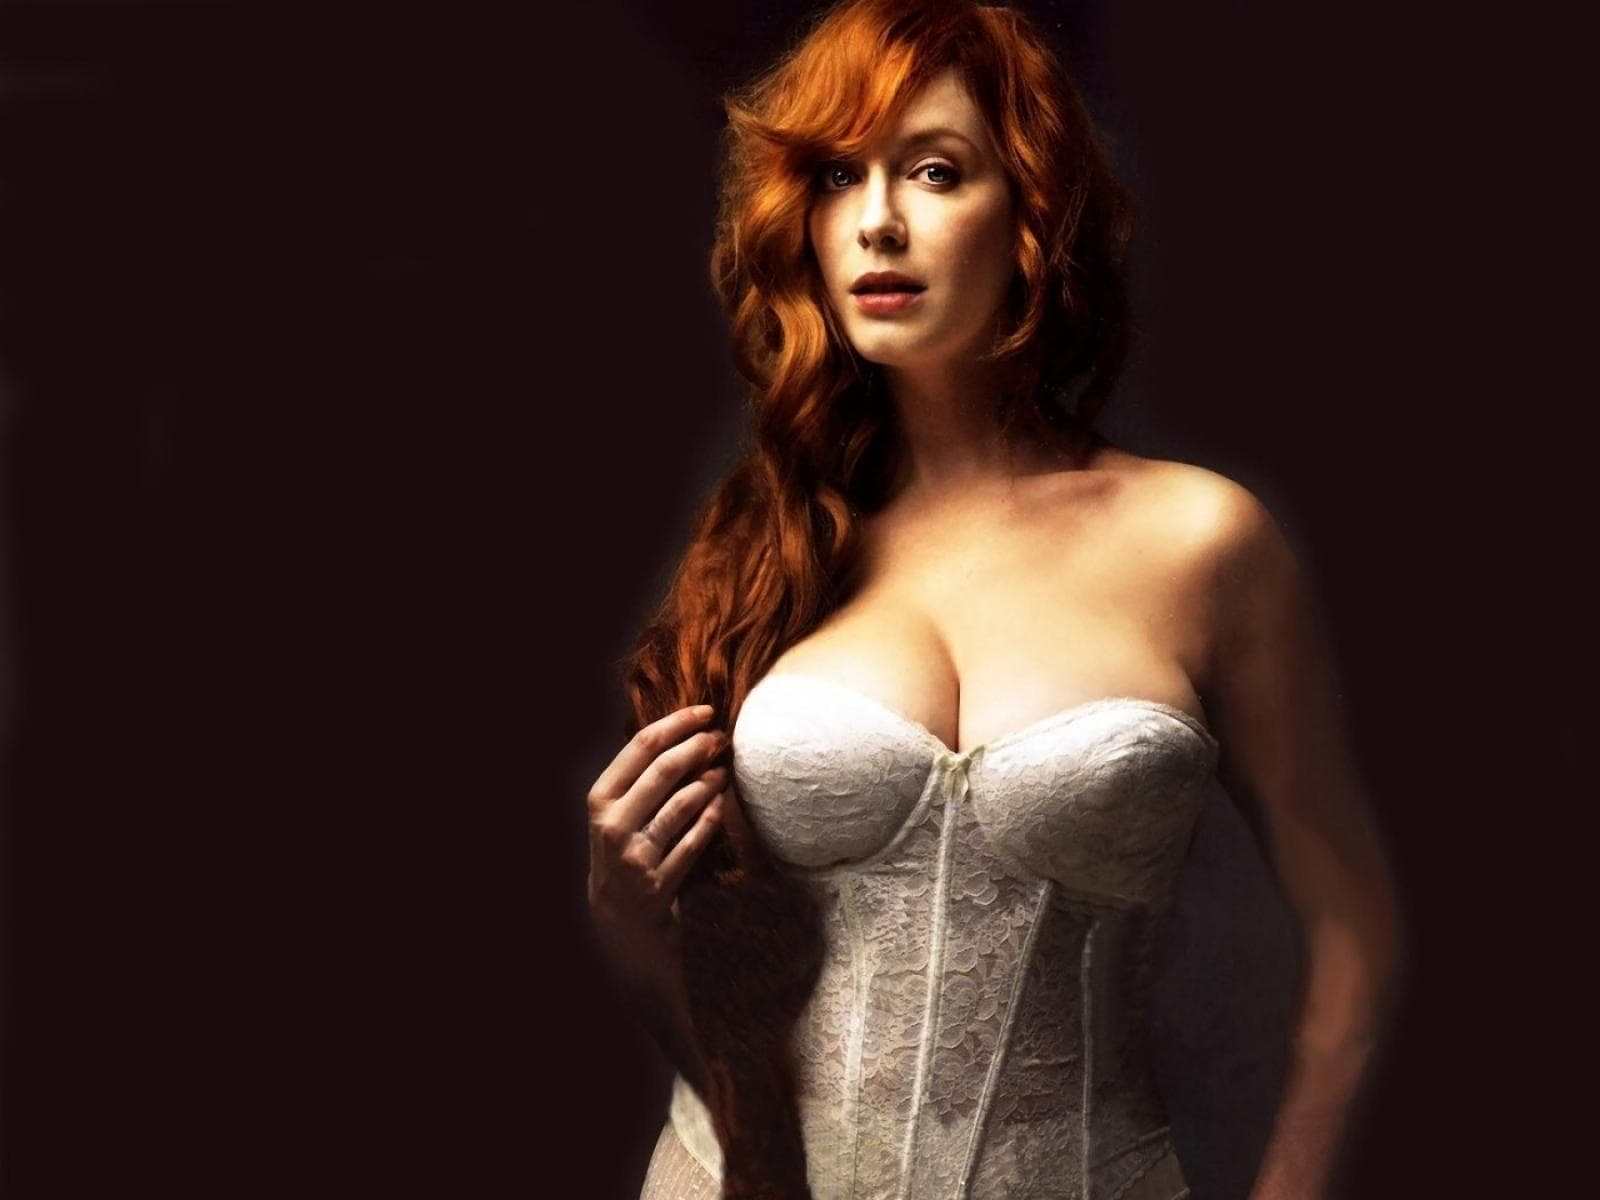 Christina Hendricks Full hd wallpapers